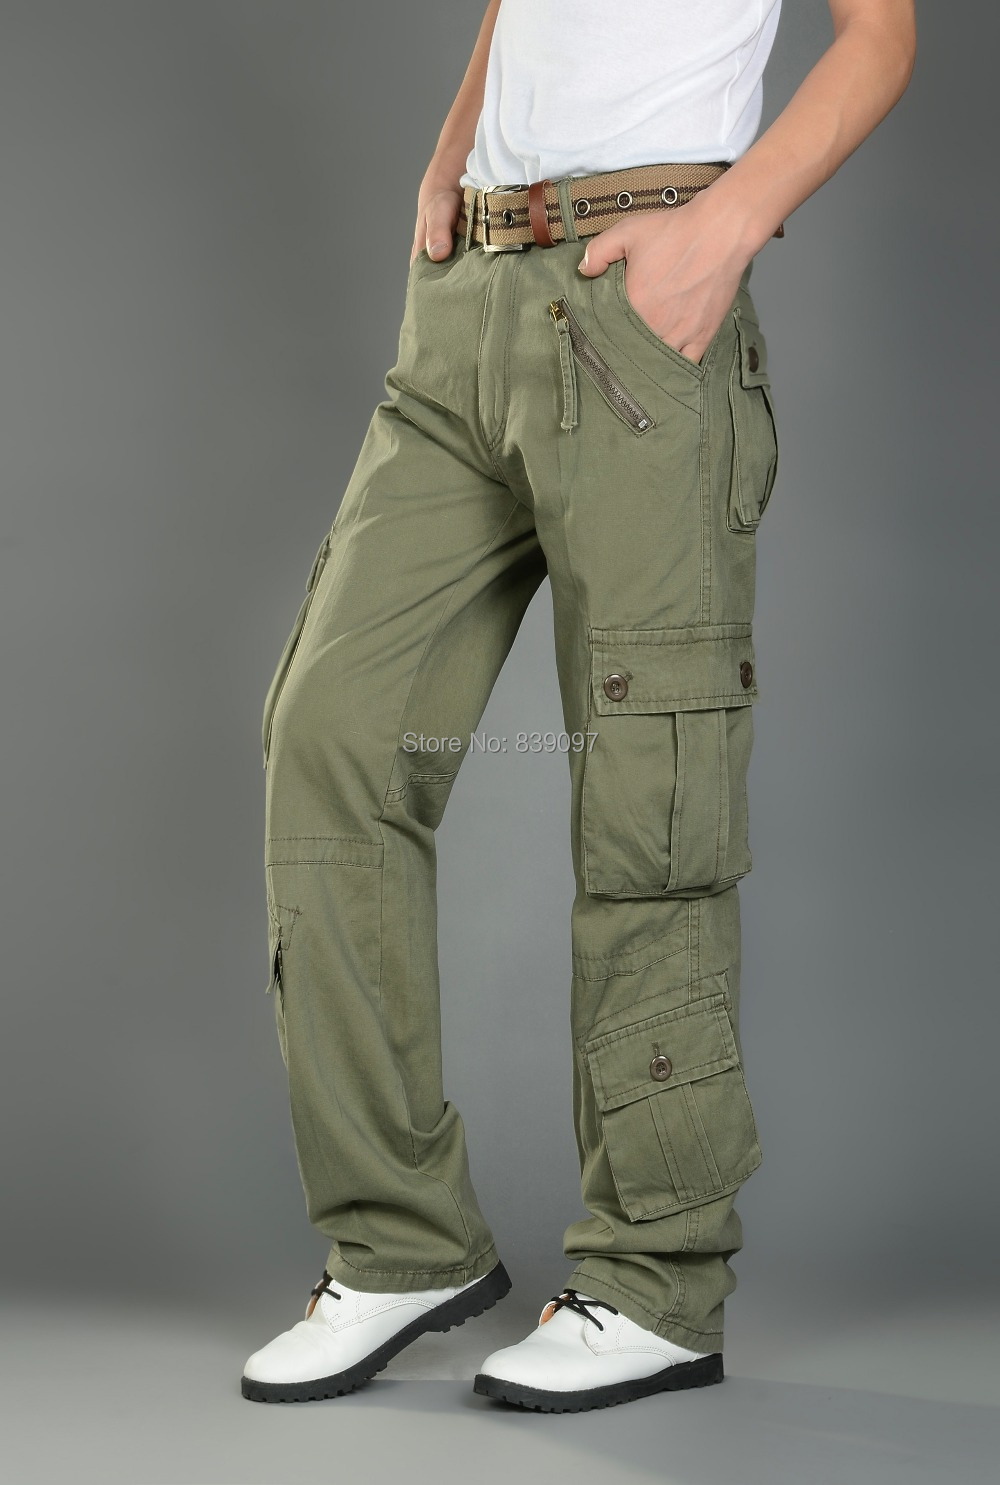 online shopping for cargo pants - Pi Pants